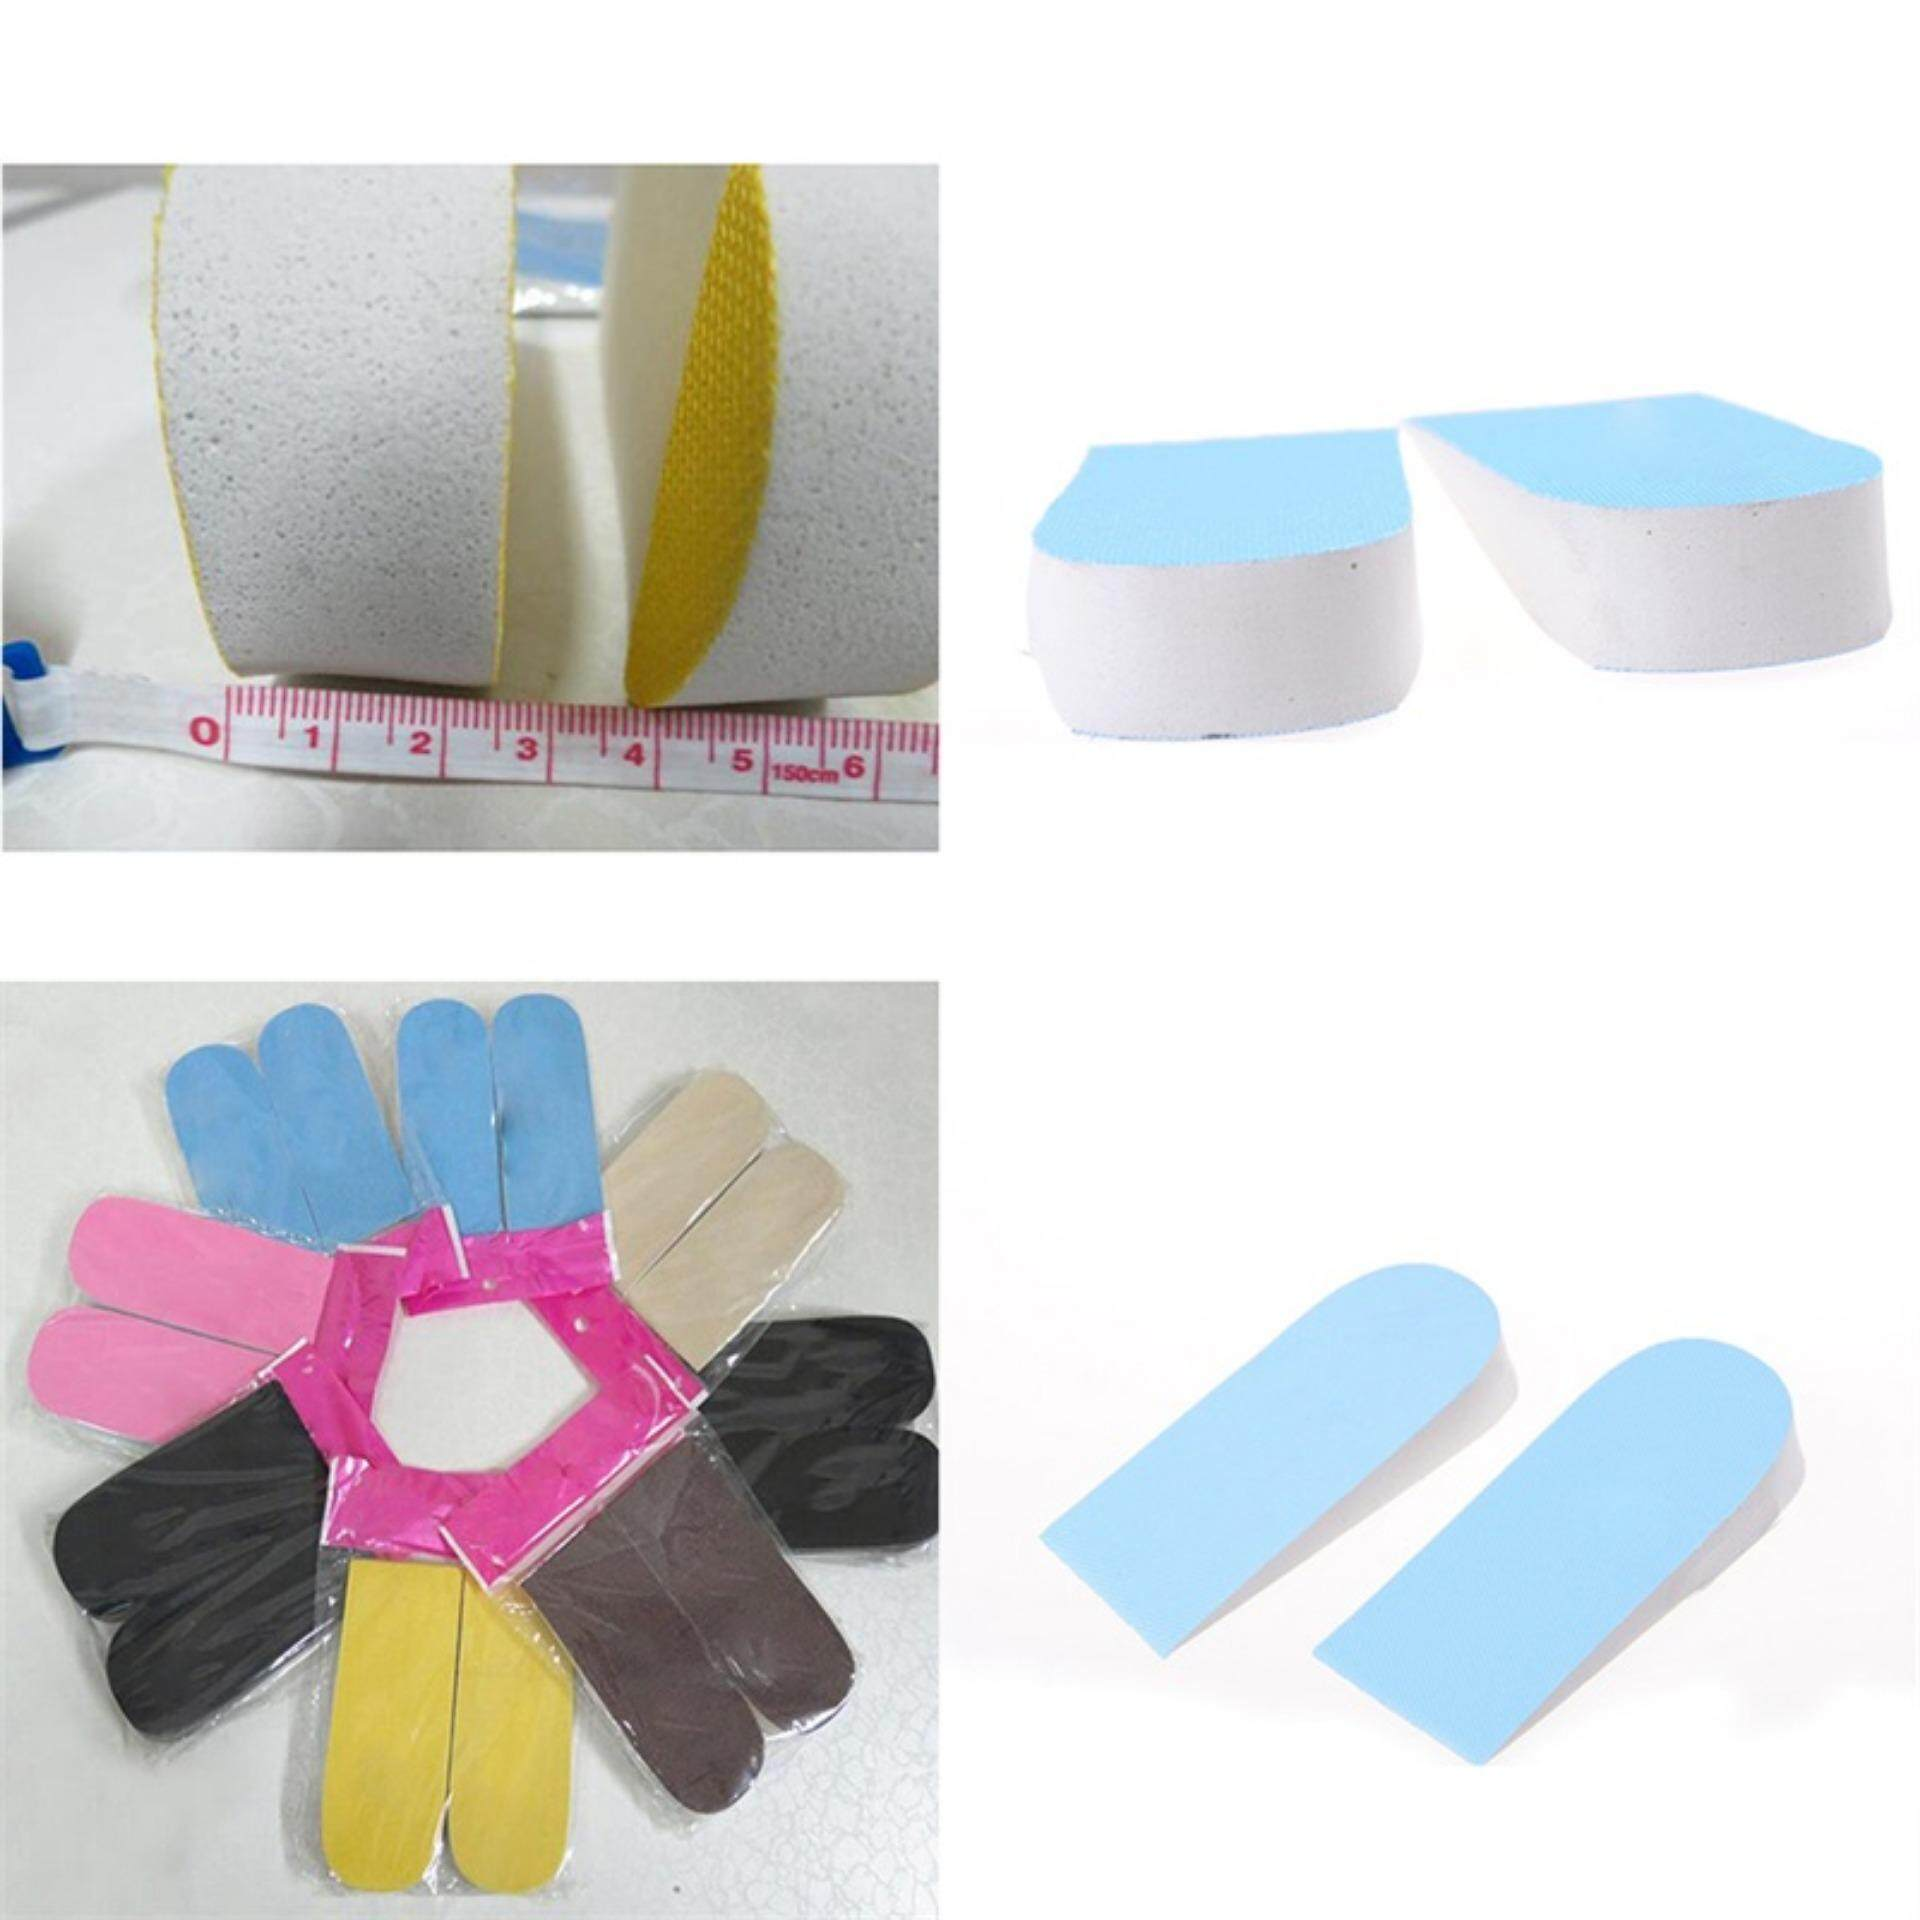 1Pair Unisex Increase Height High Half Insoles Foam Shoe Inserts Cushion Pad